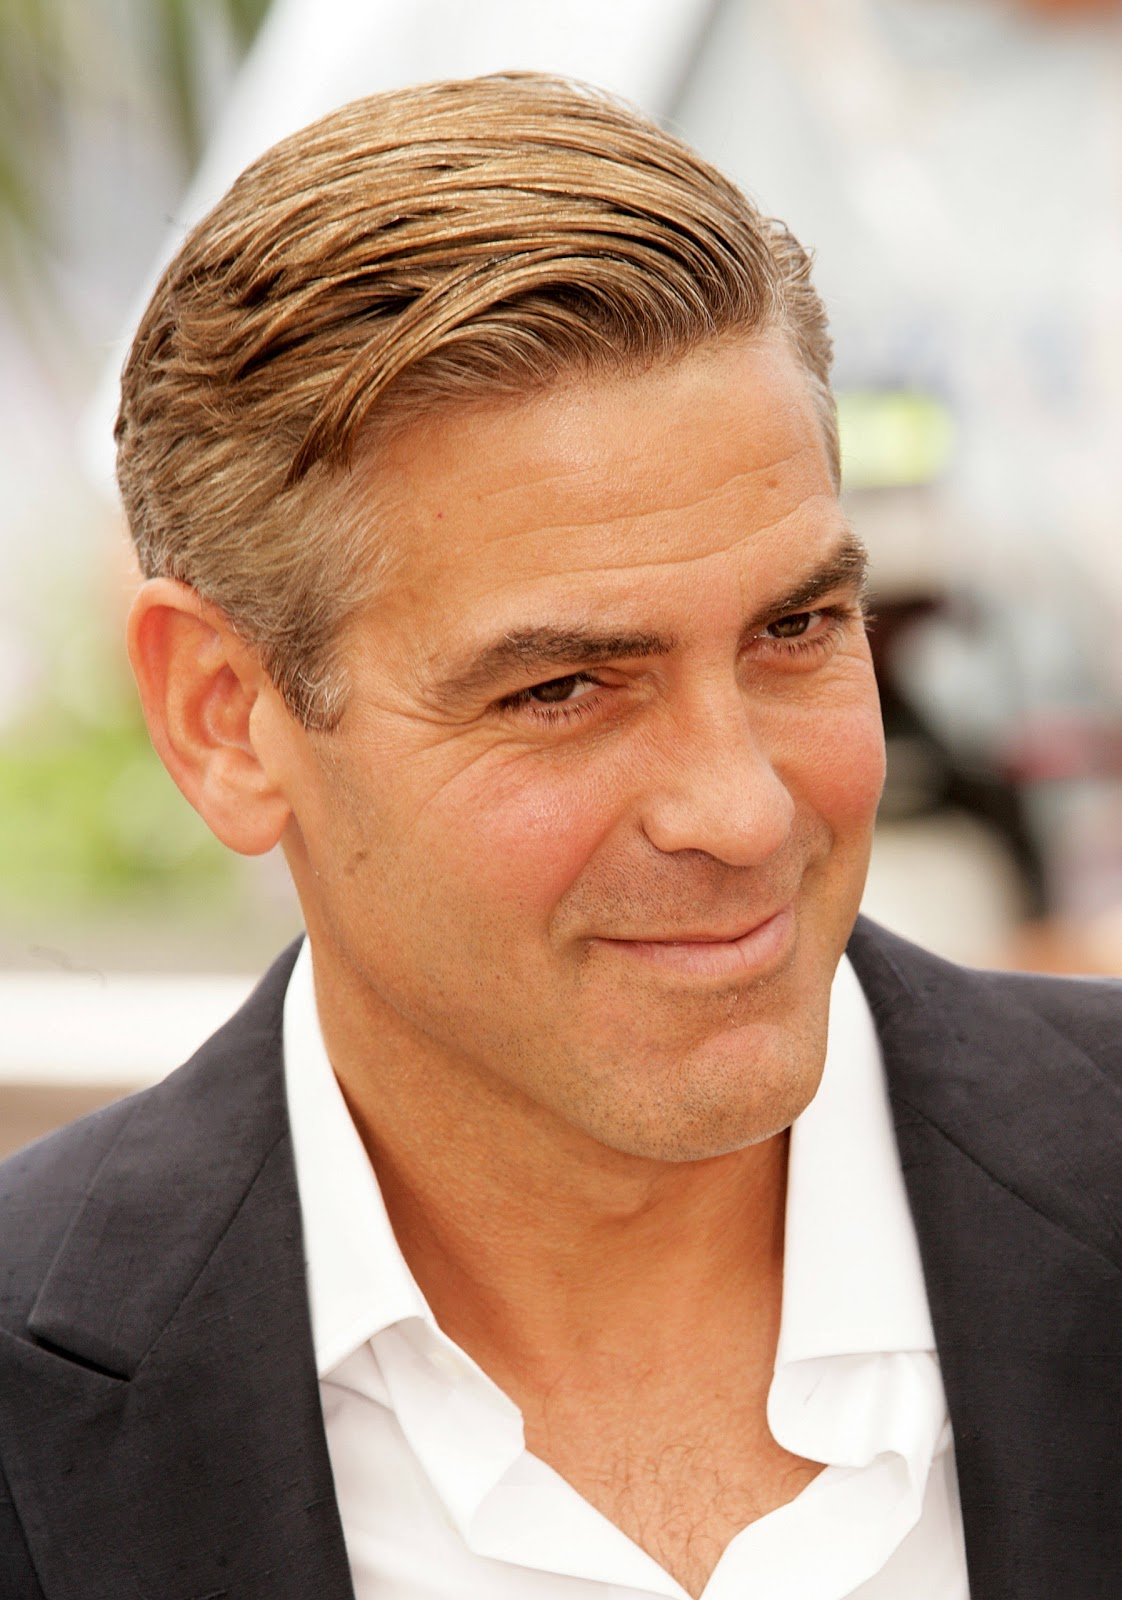 George Clooney Cool Short Hairstyle